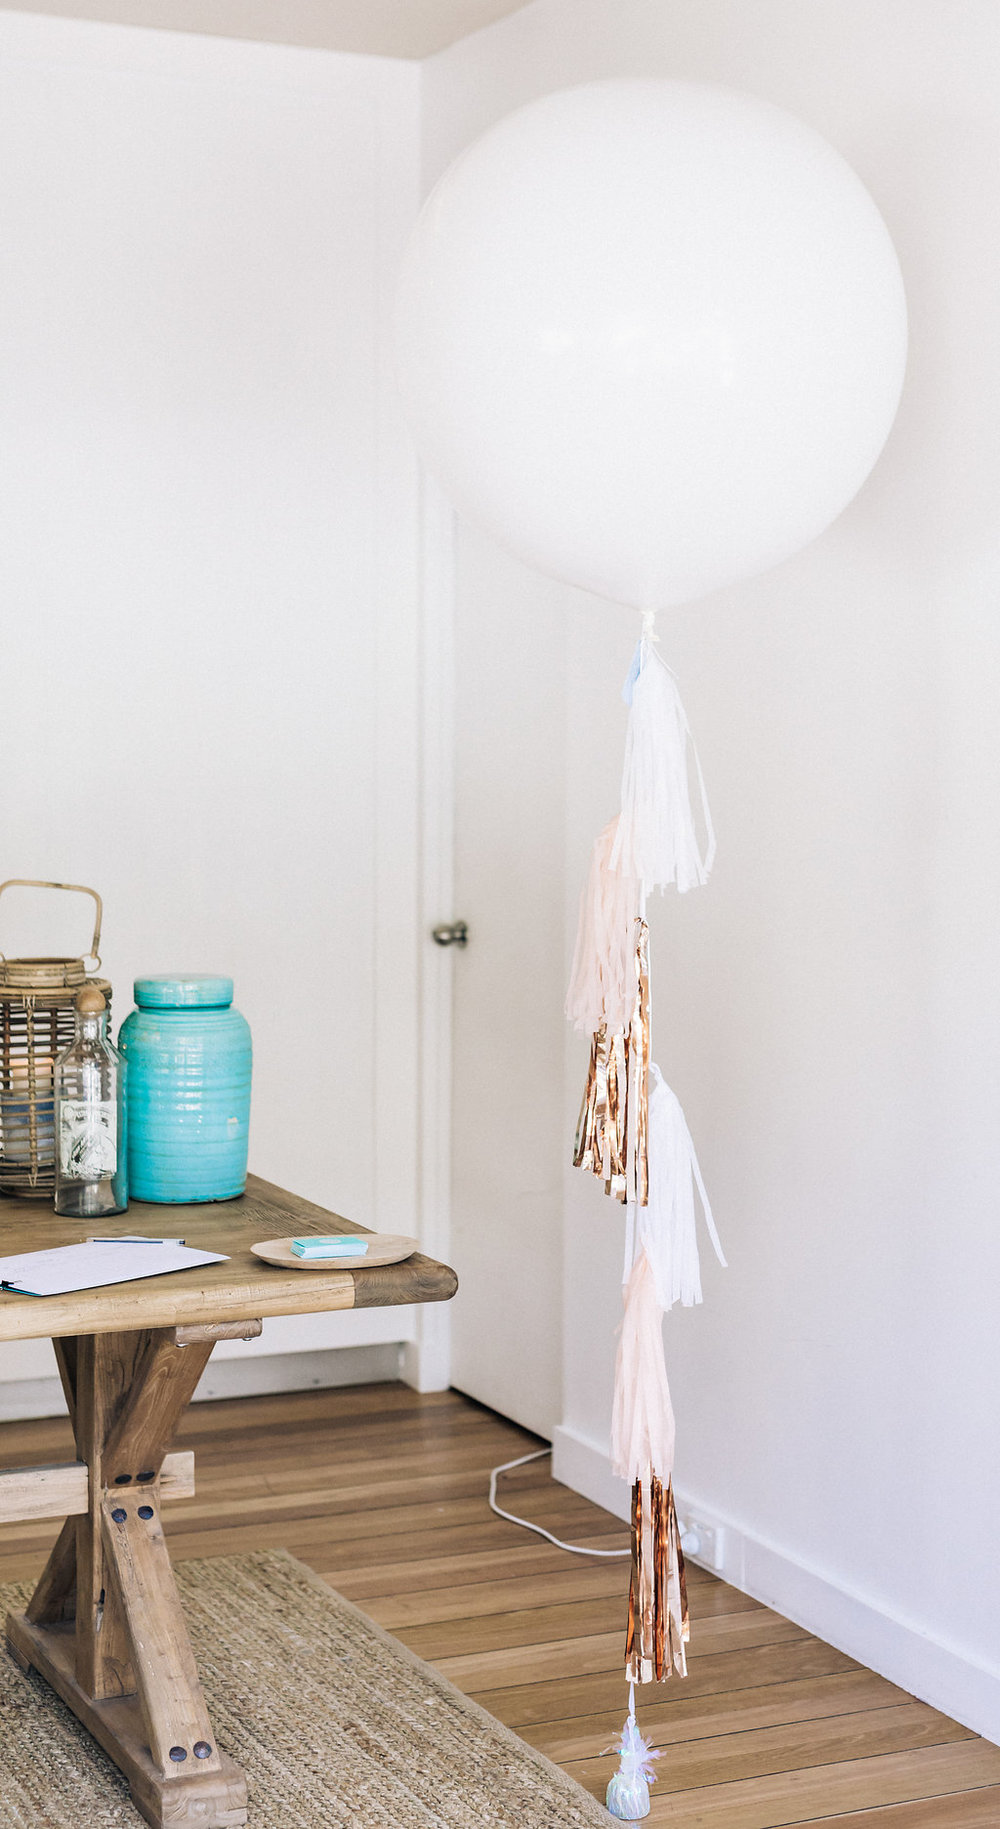 Giant-Balloon-Event-Styling-Wedding-Sydney.jpg